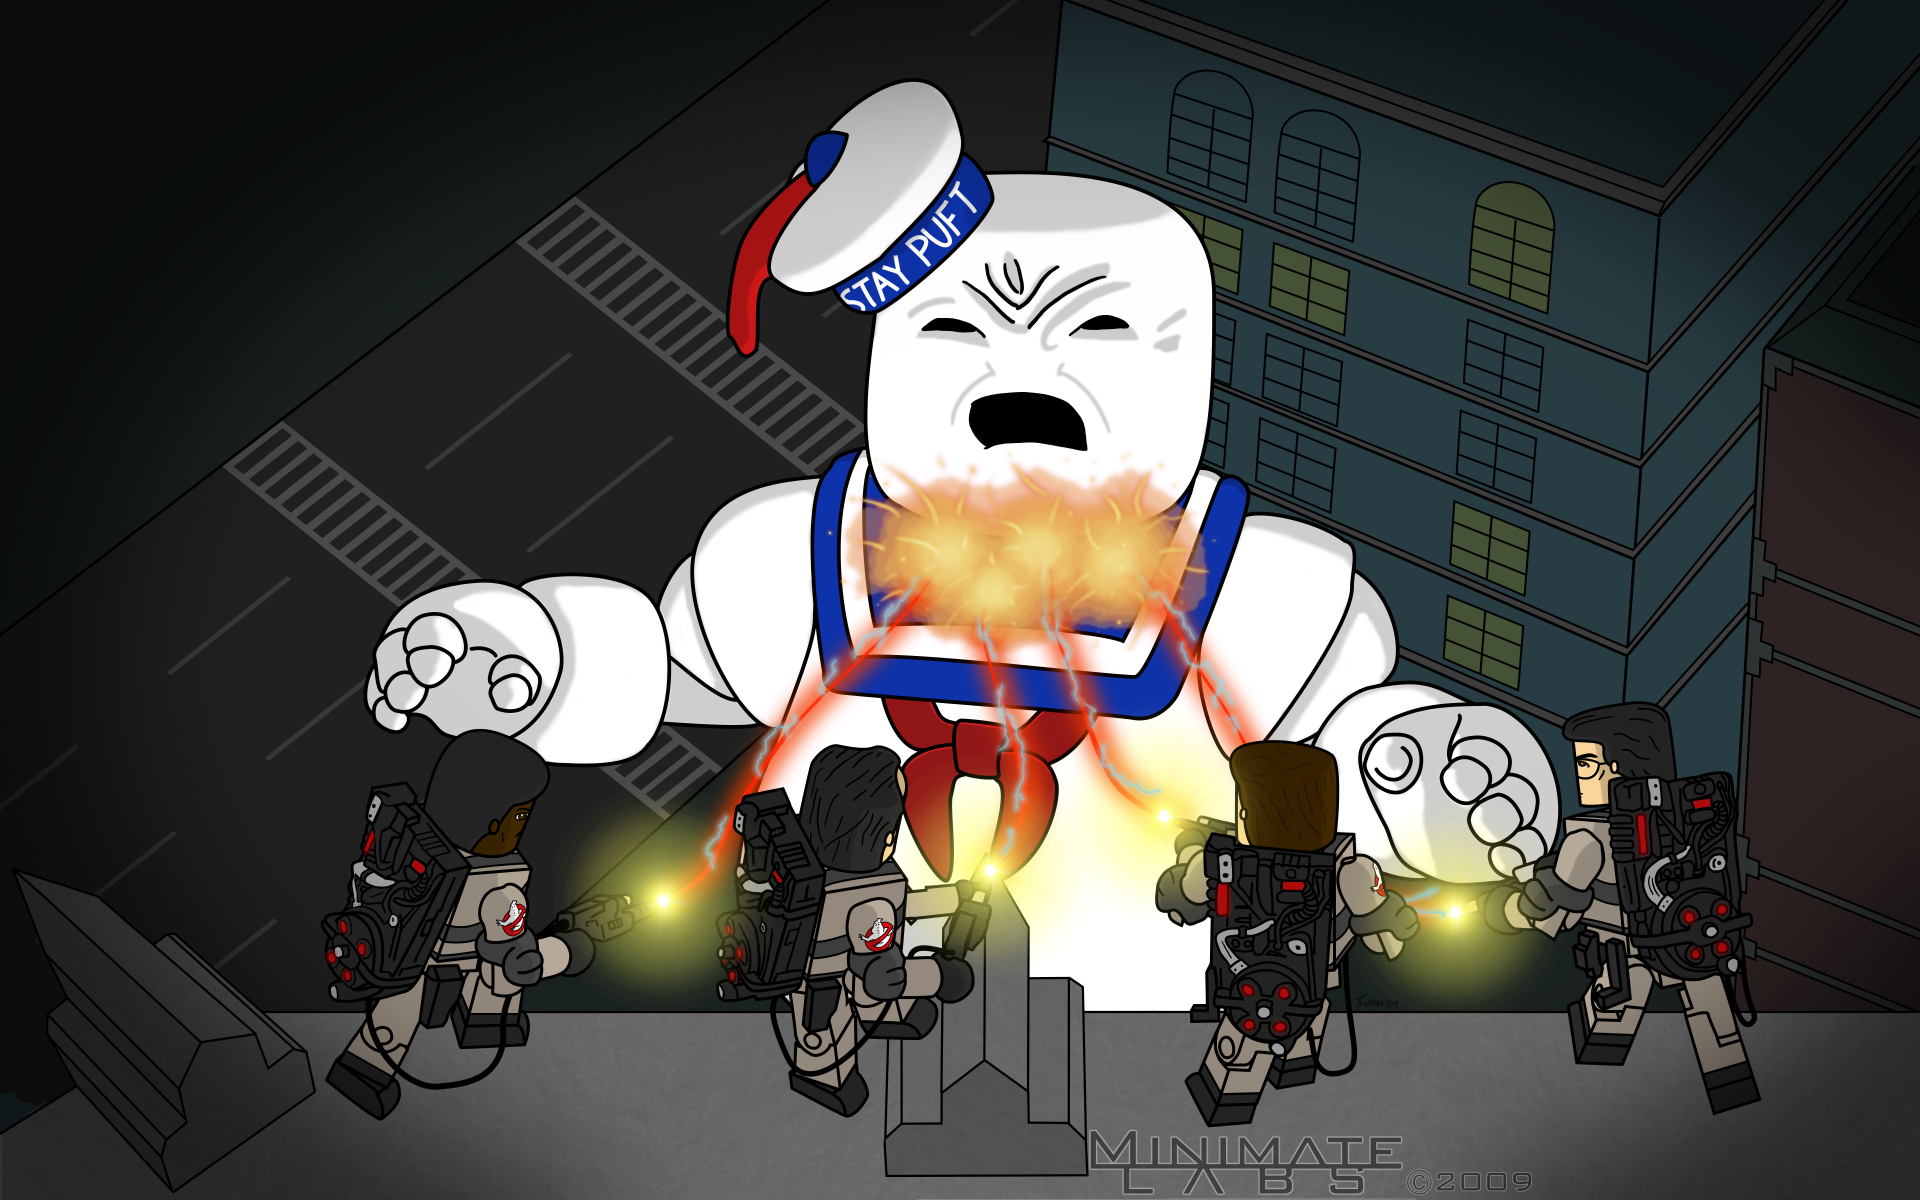 ghostbuster stay puft 1920x1080